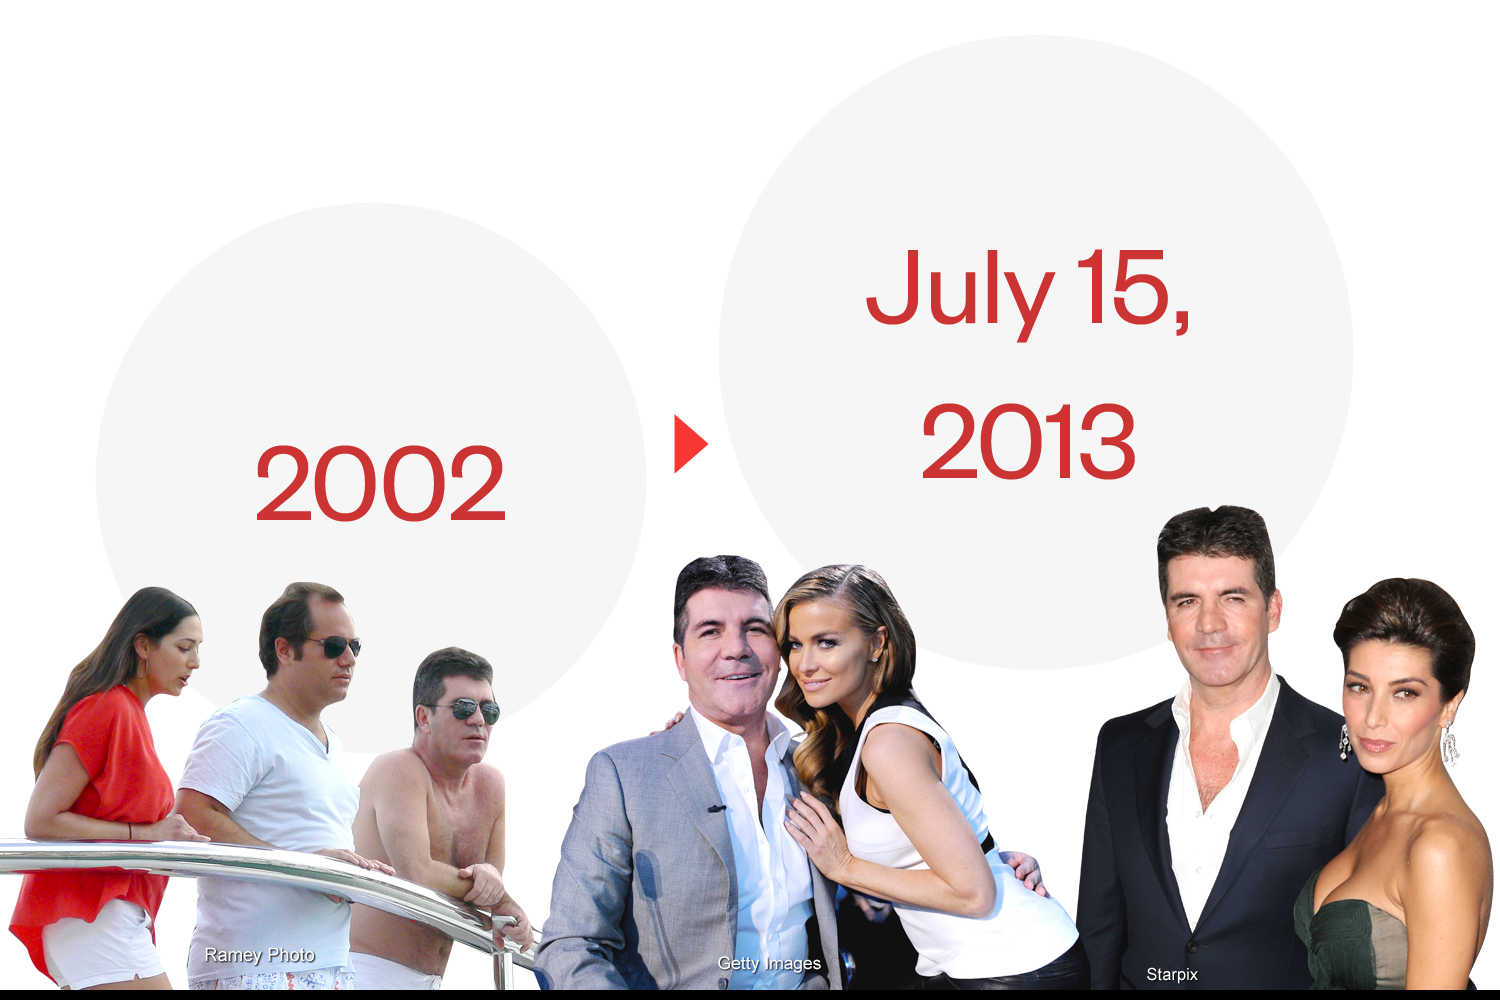 Simon Cowell scandal – The Timeline